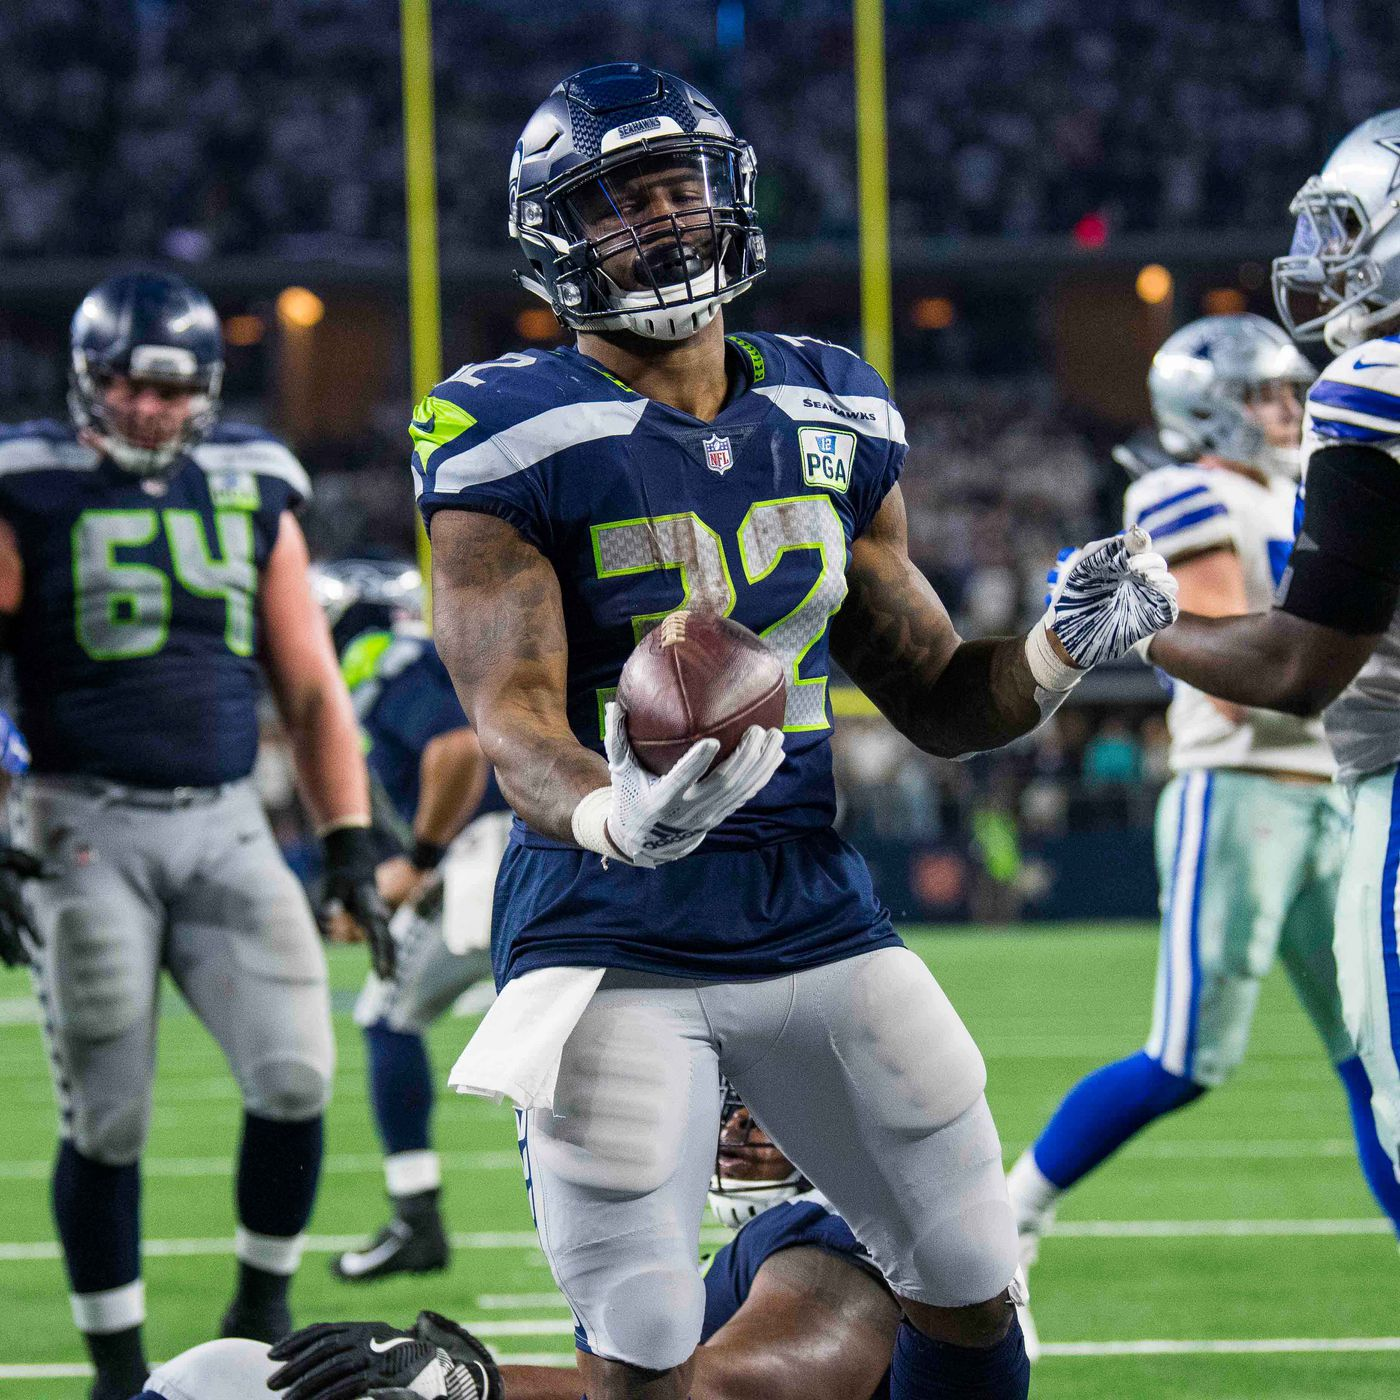 971154698af Seahawks News 2/1: What Will Seahawks RB Depth Look Like in 2019 ...